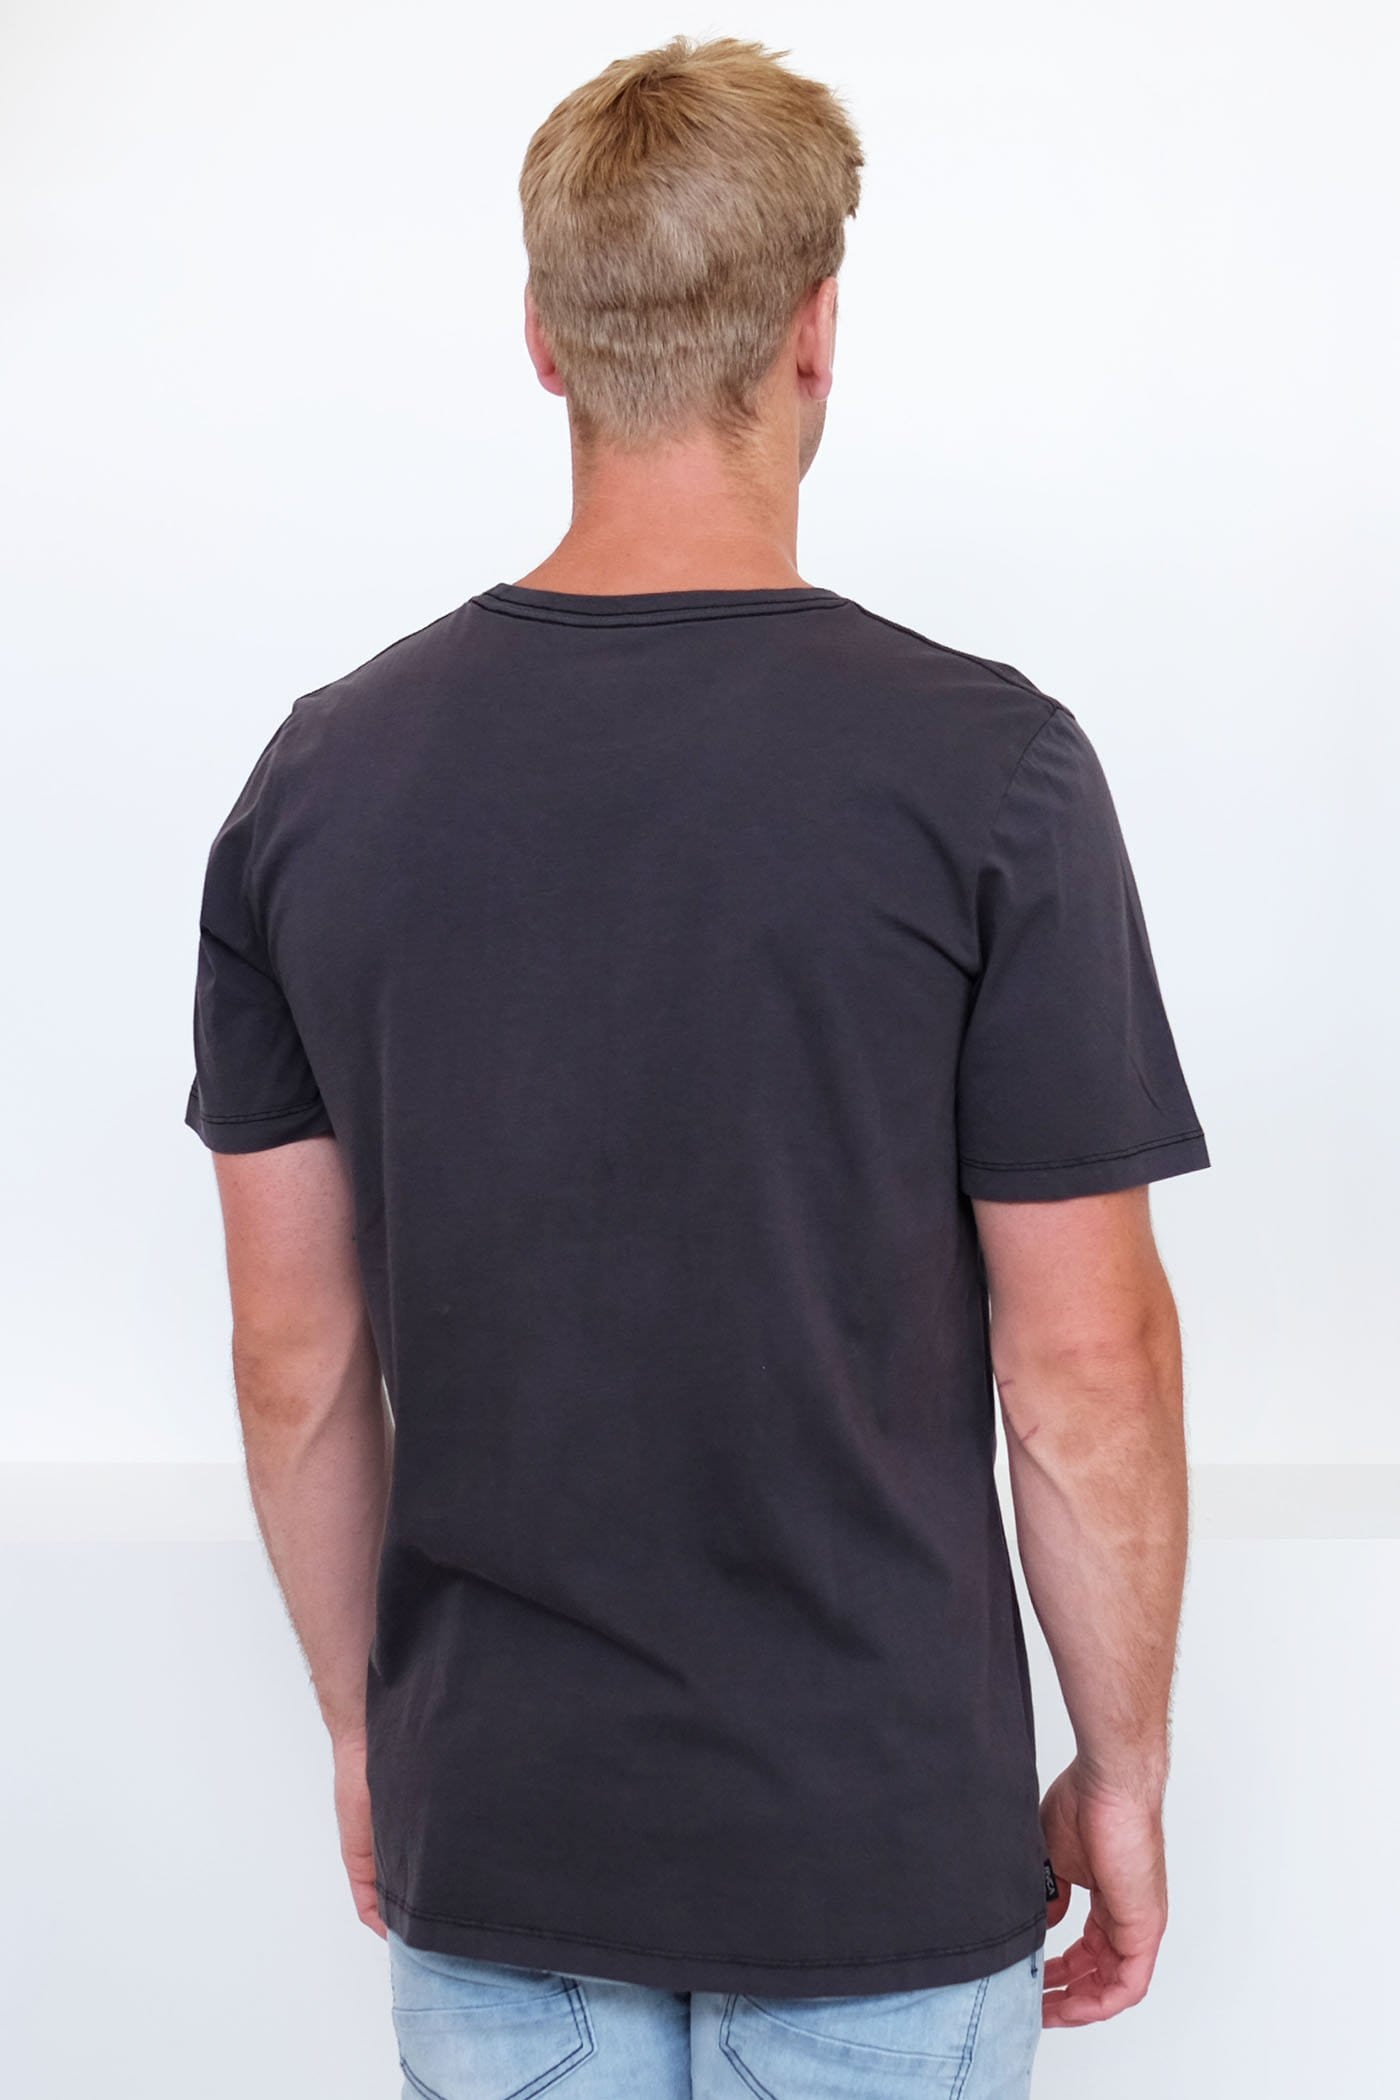 RVCA Samurai Short Sleeve Tee Black